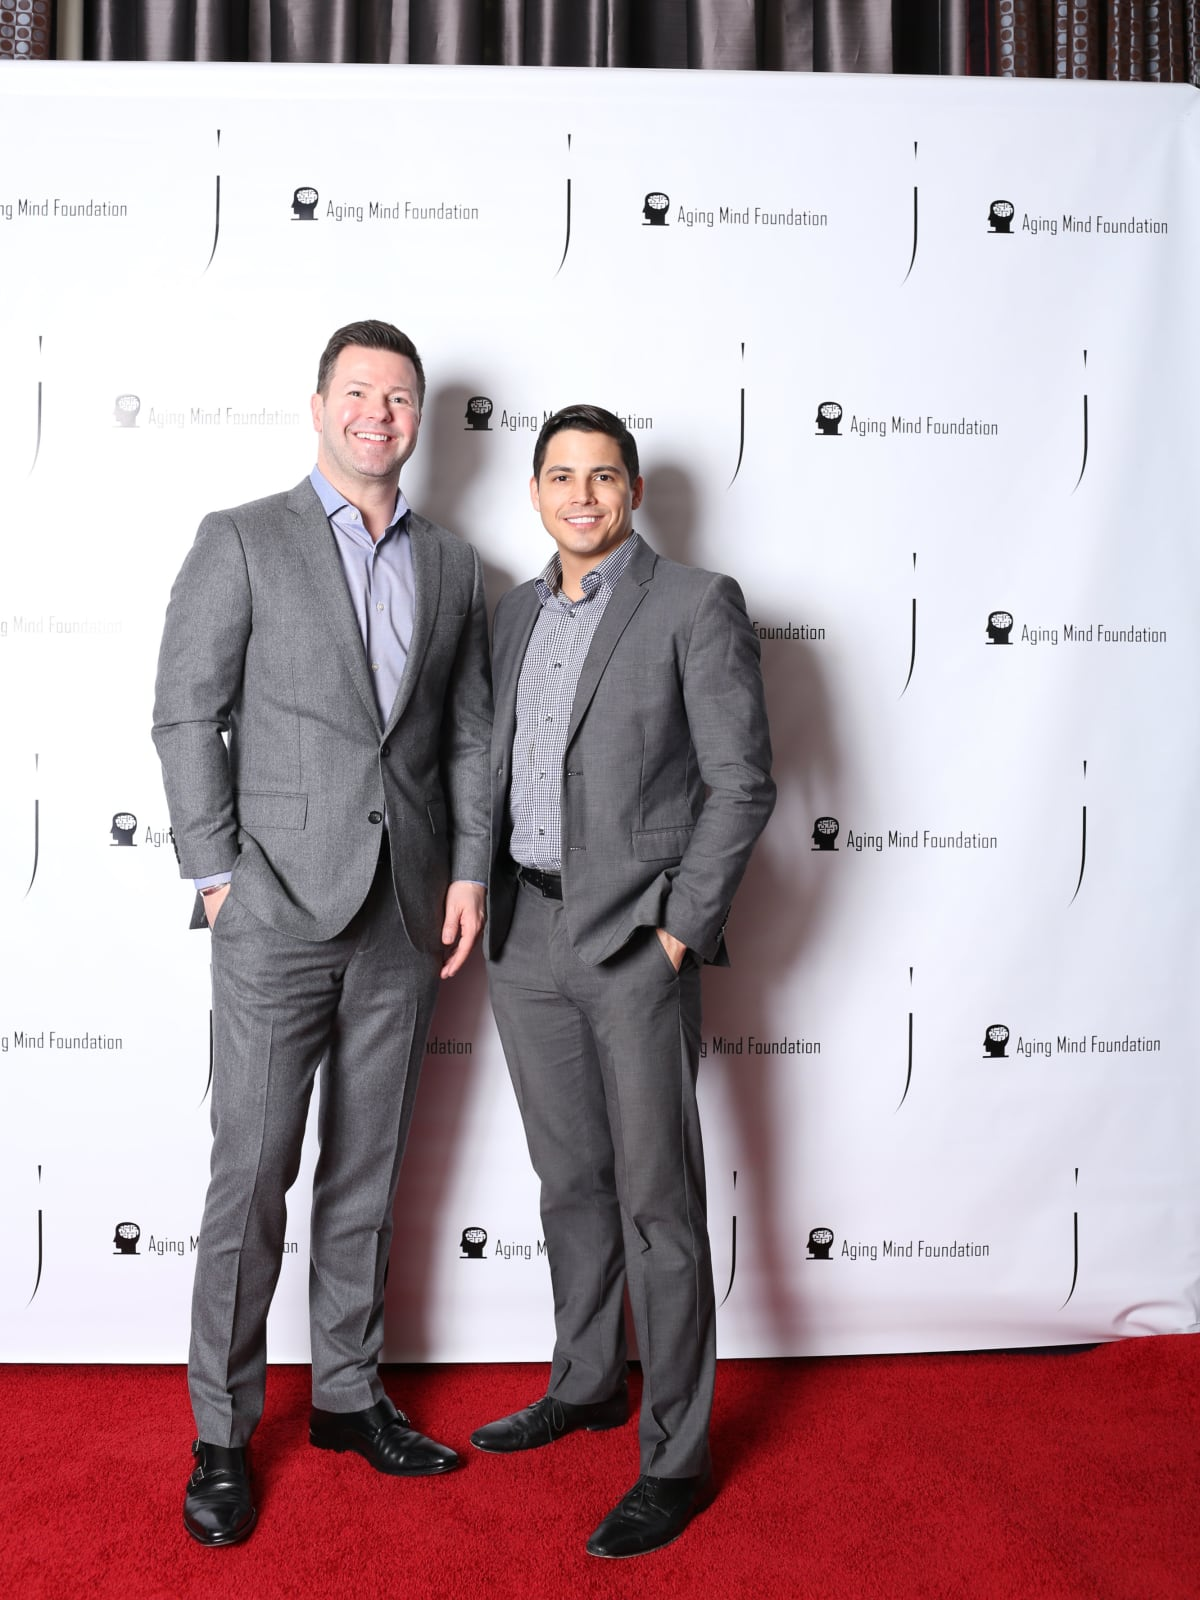 Ron Corning and Shane Allen